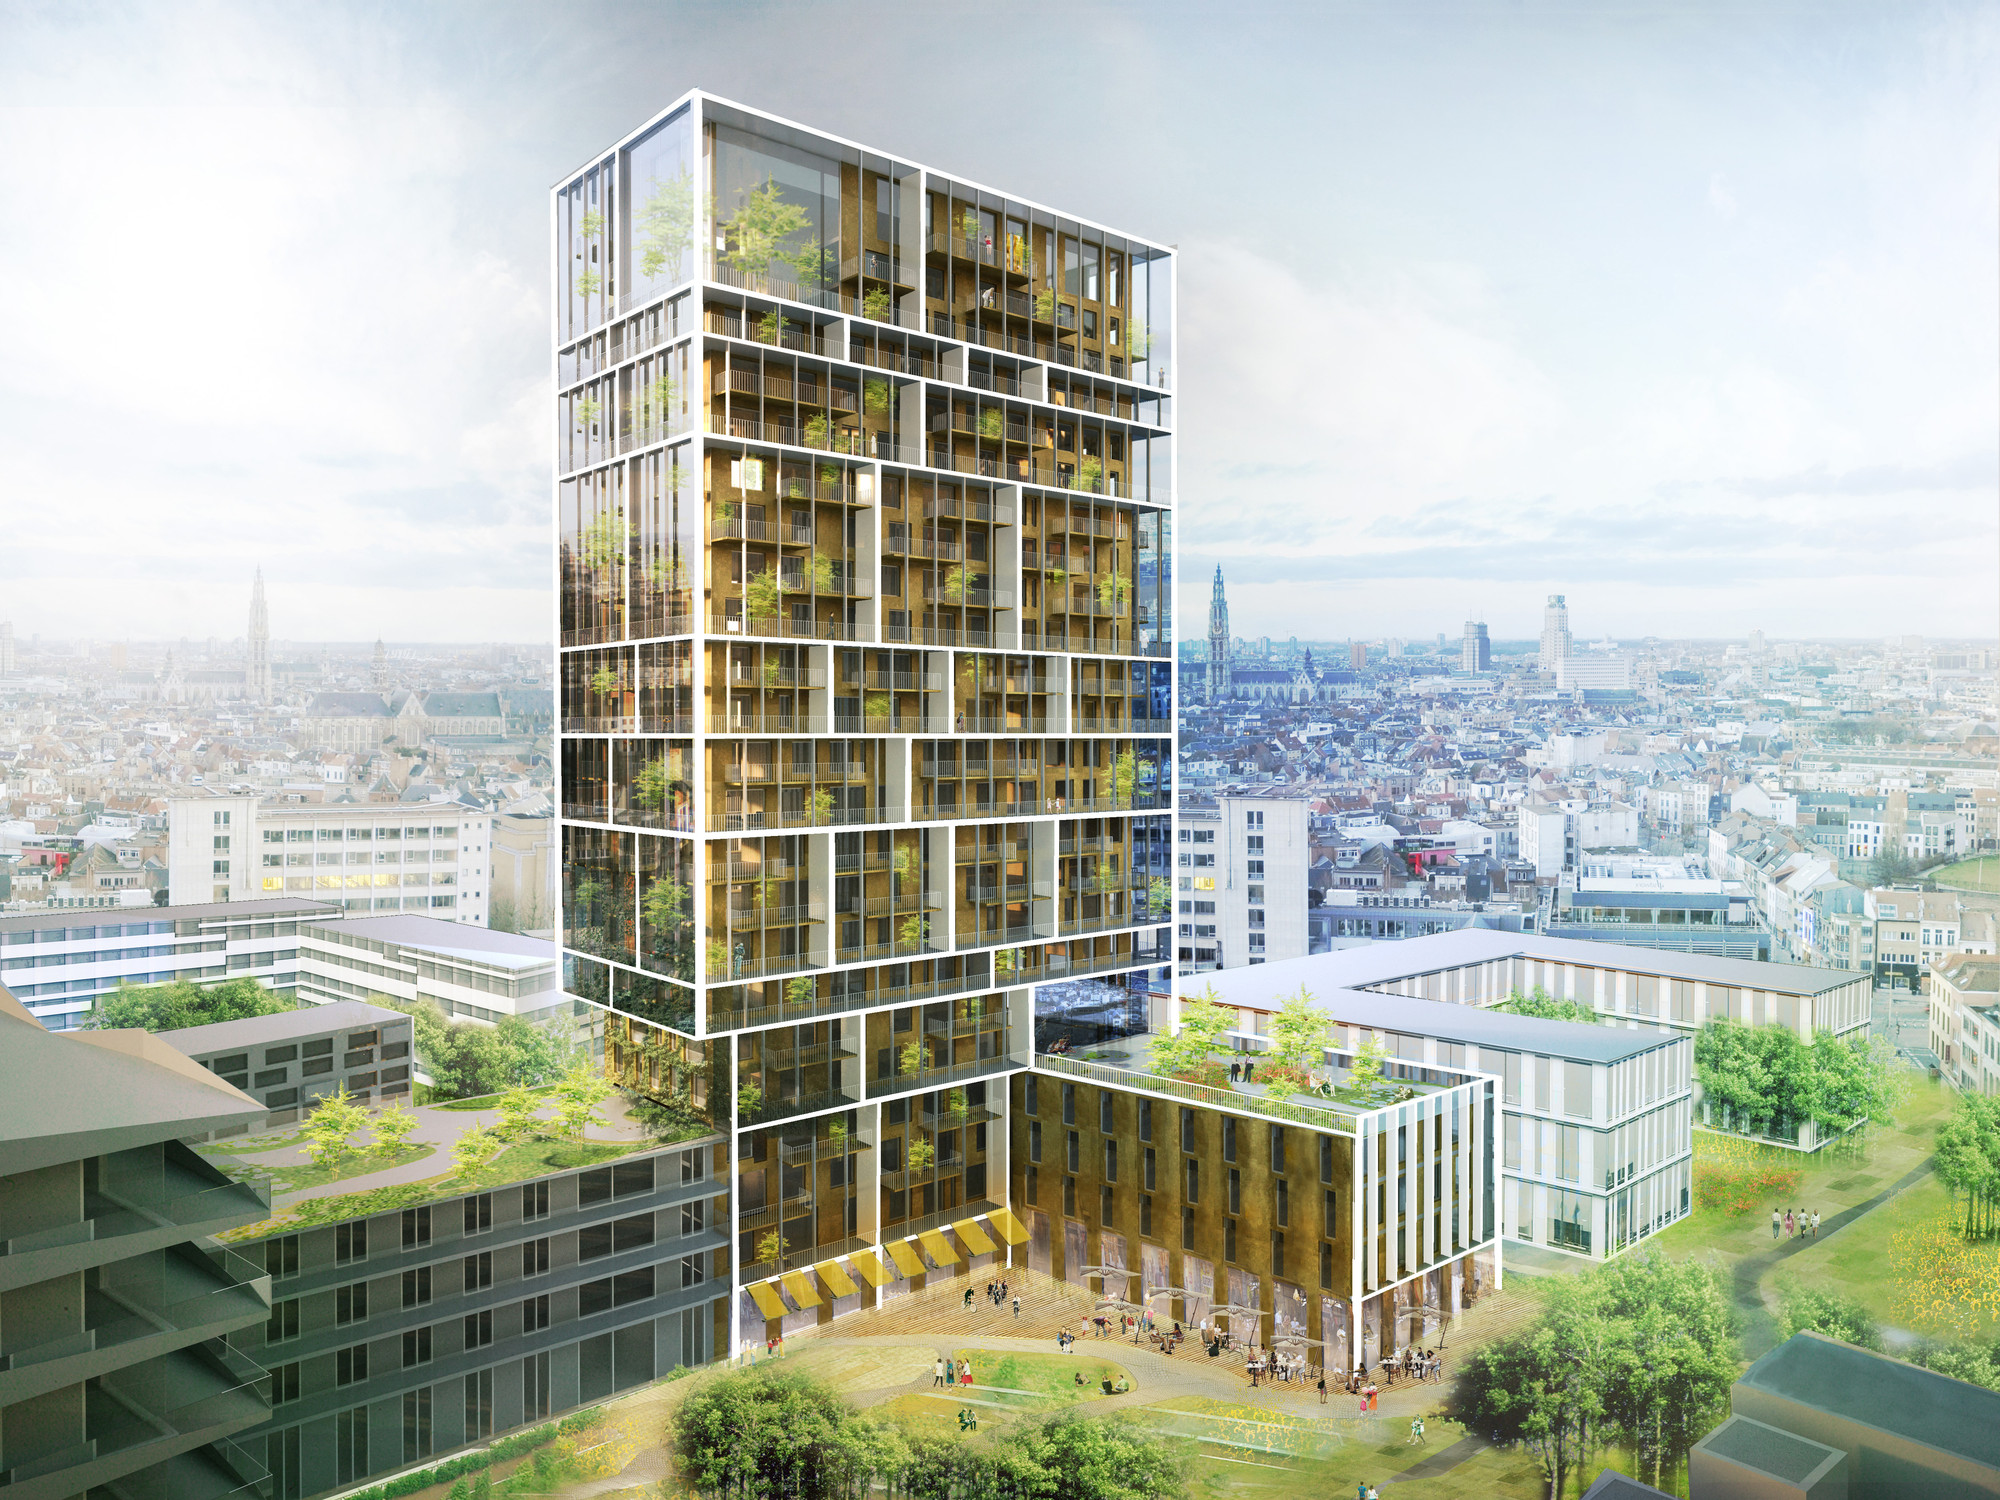 C f m ller chosen to design antwerp residential tower for Residential architect